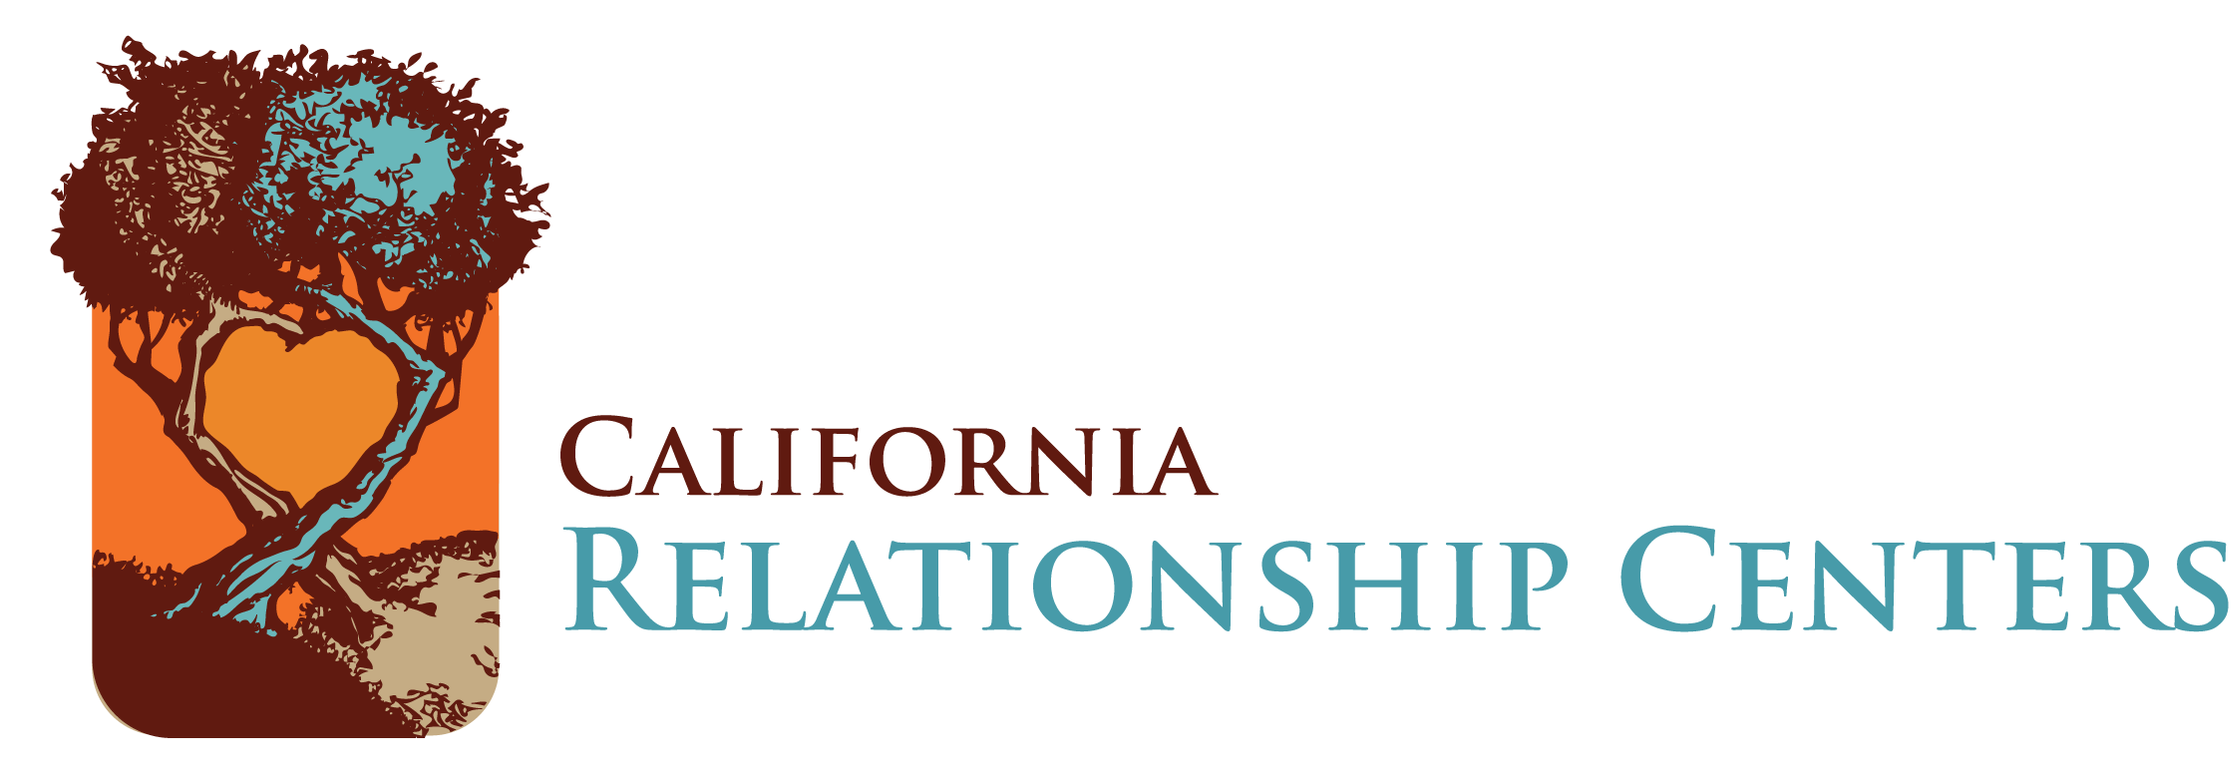 East Bay Intimacy & Sex Therapy Center'sPrivacy Policy - Your privacy & protection matter to us.